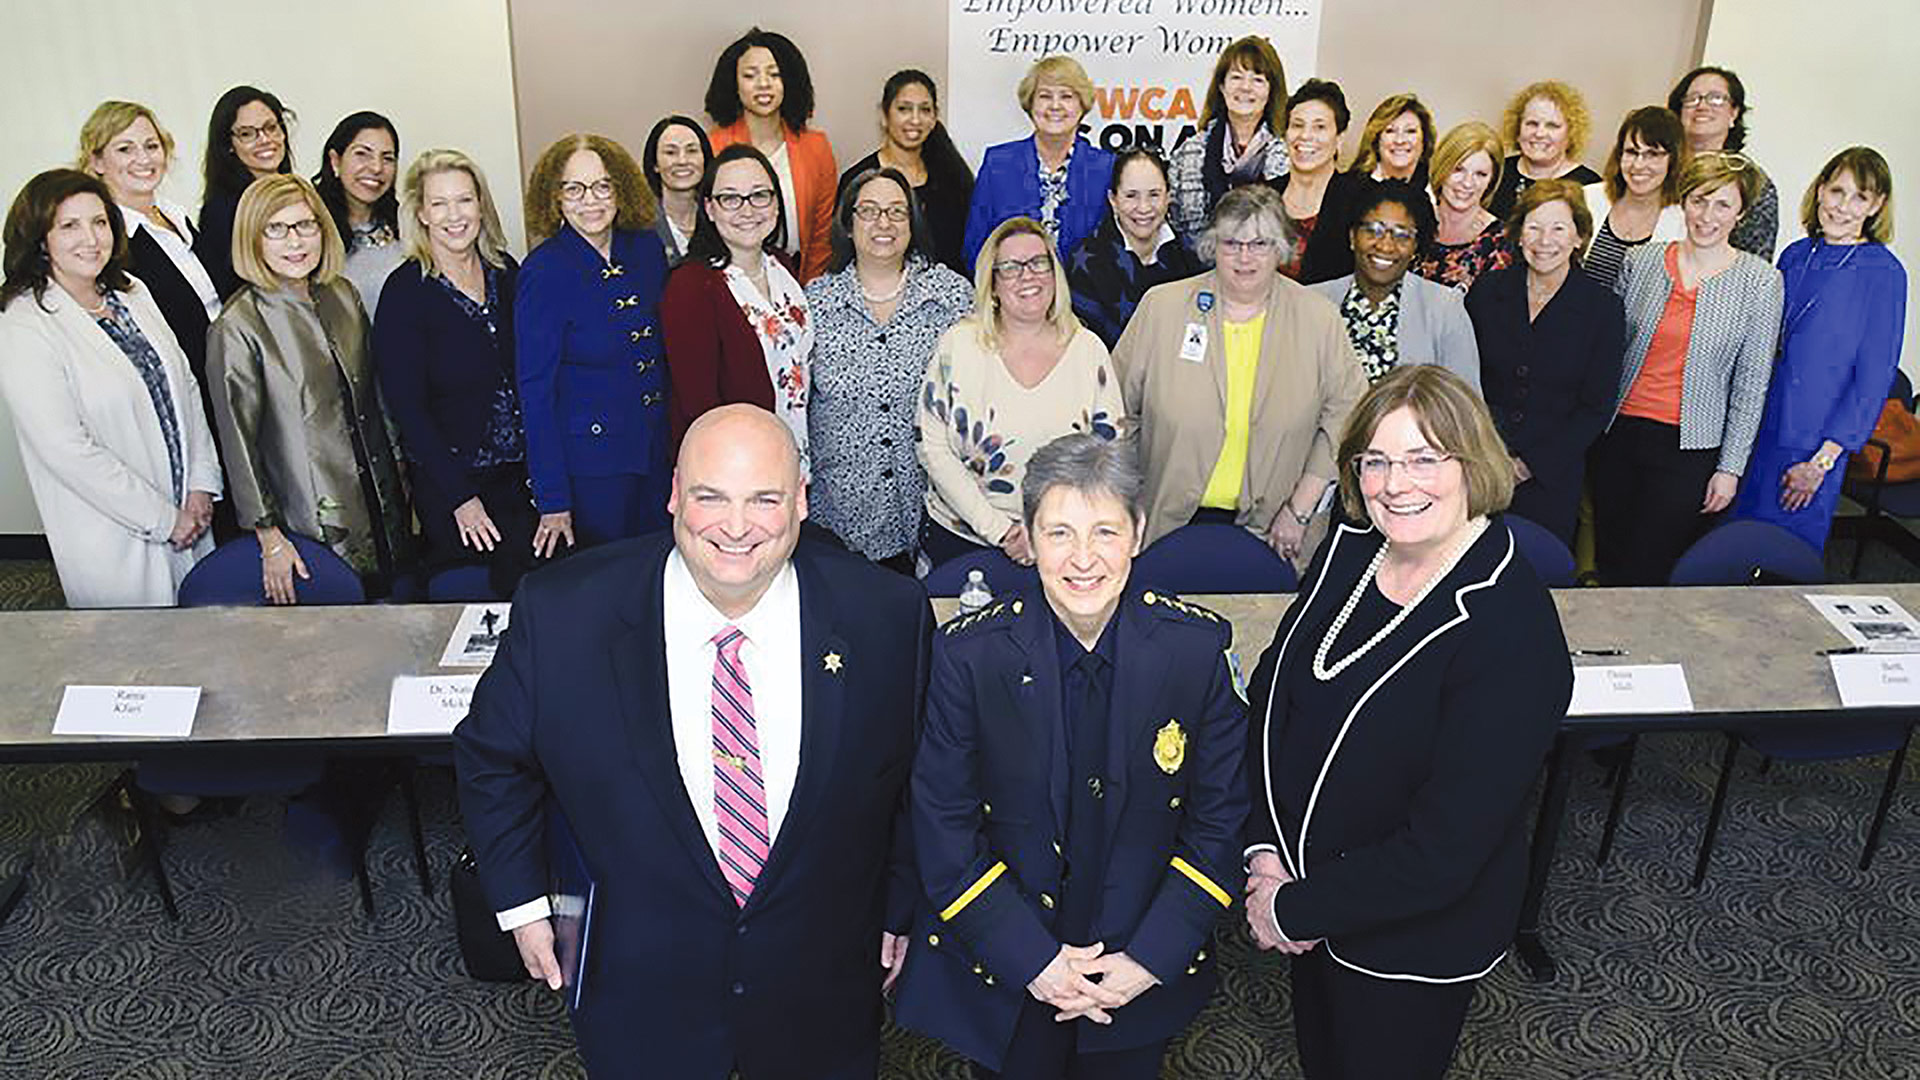 Claprood, center, with Hampden County Sheriff Nick Cocchi and YWCA Executive Director Elizabeth Dineen, a former prosecutor in Hampden County. Behind them are some of the more than 30 women who attended the event